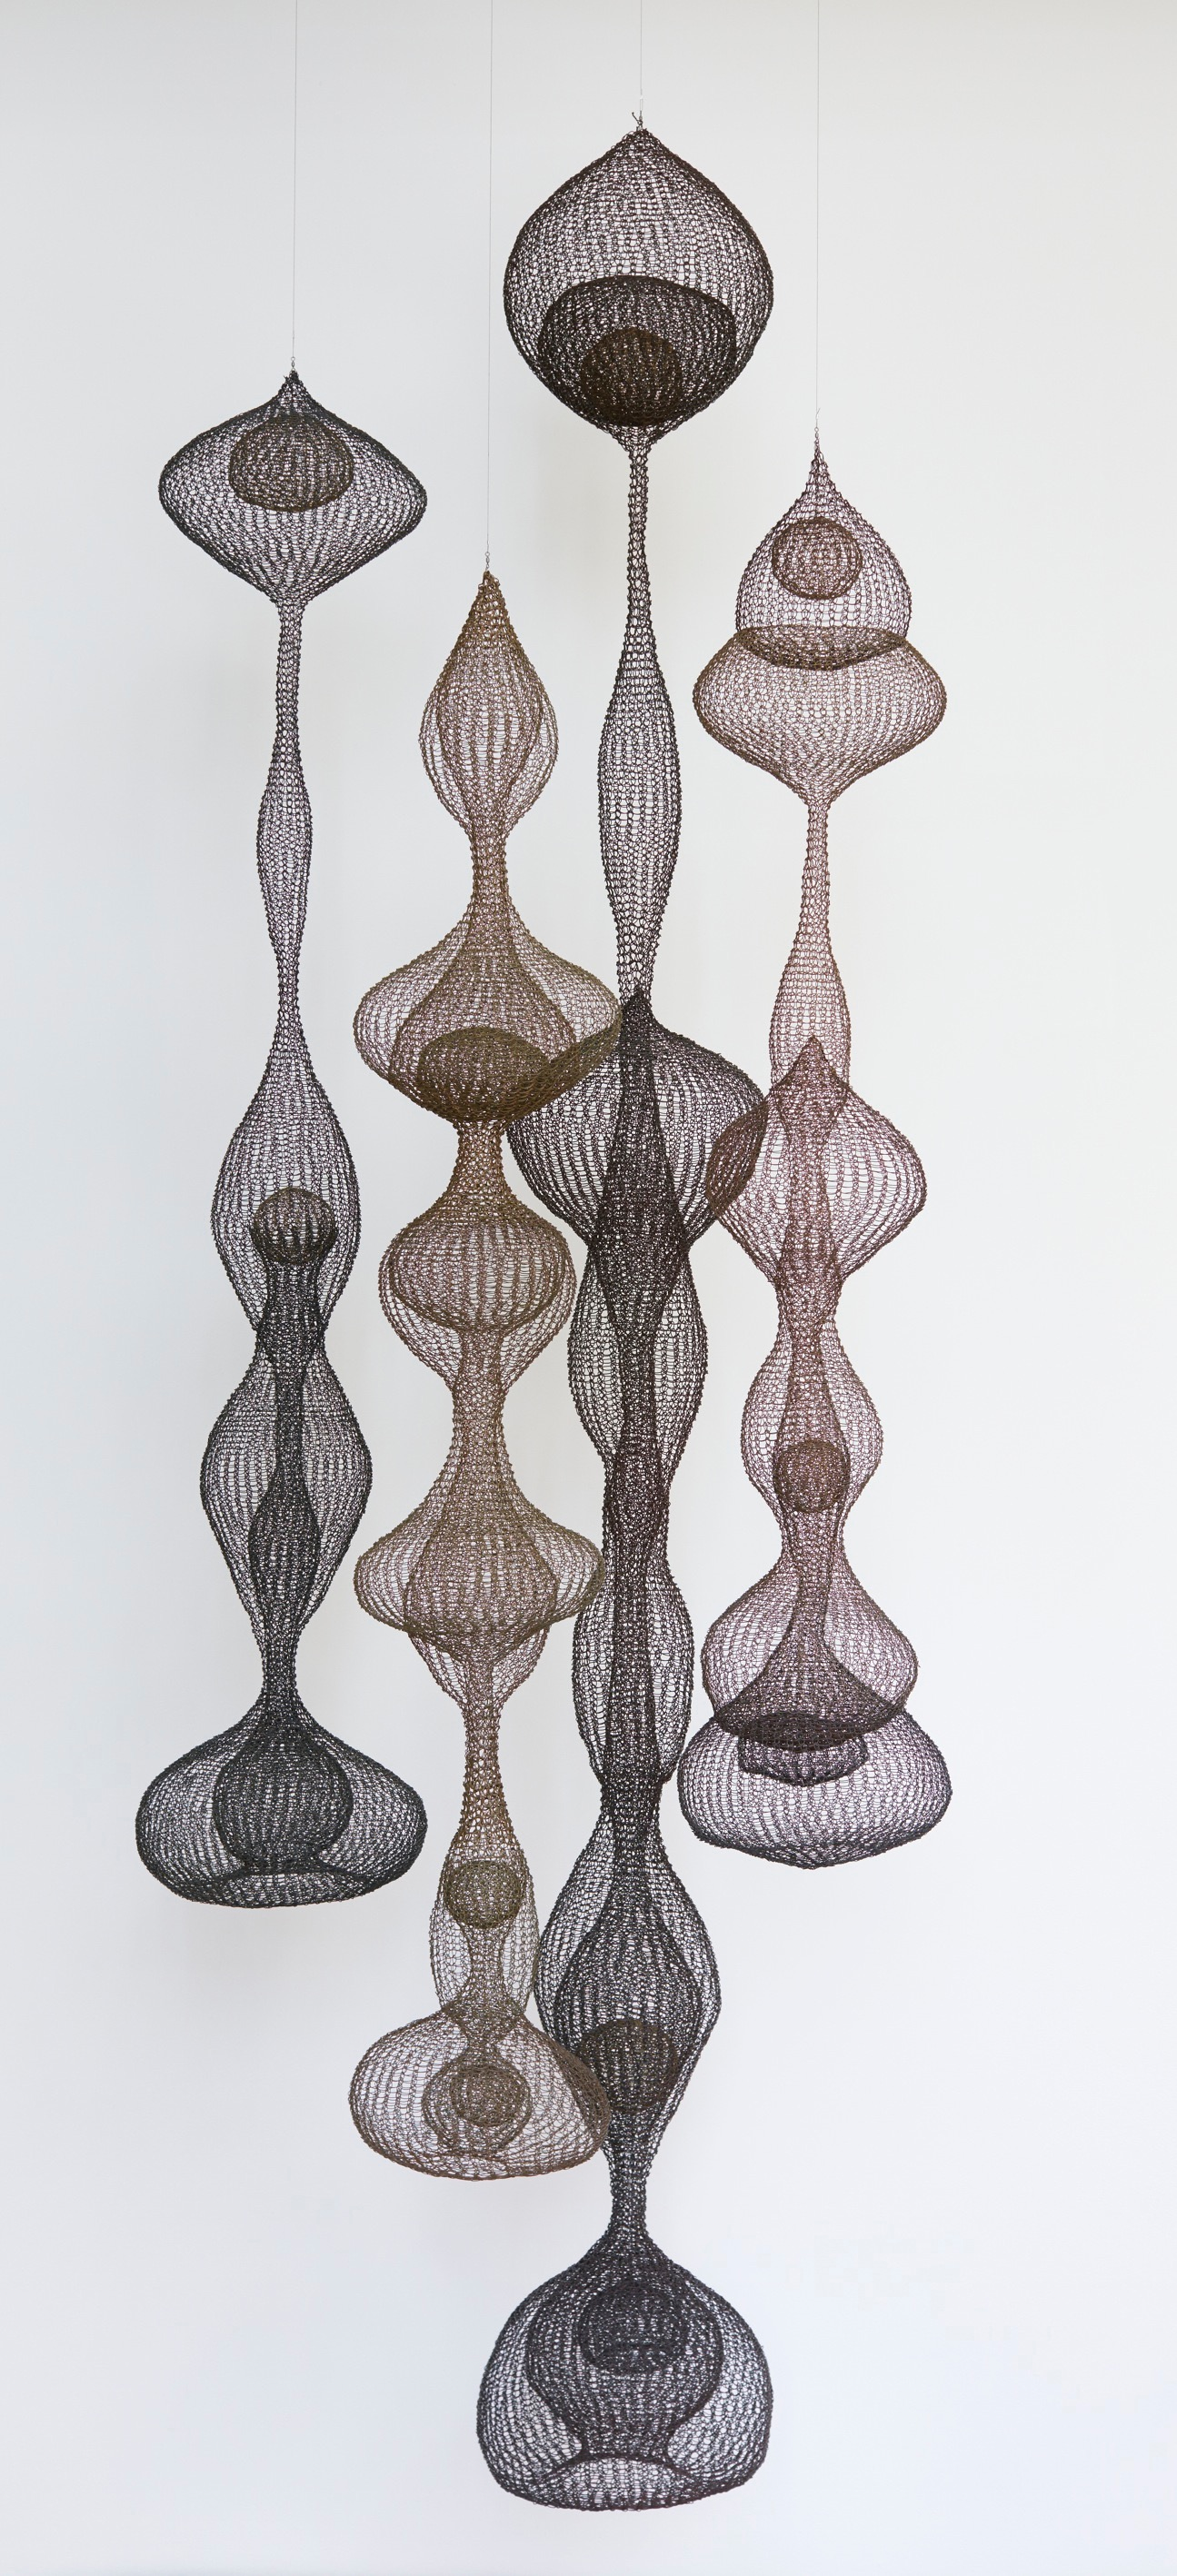 Ruth Asawa Untitled [S.228, Hanging Six-Lobed, Discontinuous Surface (three sections) with Interlocked Top Section] ca. 1962 Copper and brass wire, naturally oxidized 96 x 17 x 17 in / 243.8 x 43.2 x 43.2 cm © Estate of Ruth Asawa Estate of Ruth Asawa, courtesy Christie's Photo: JKA Photography